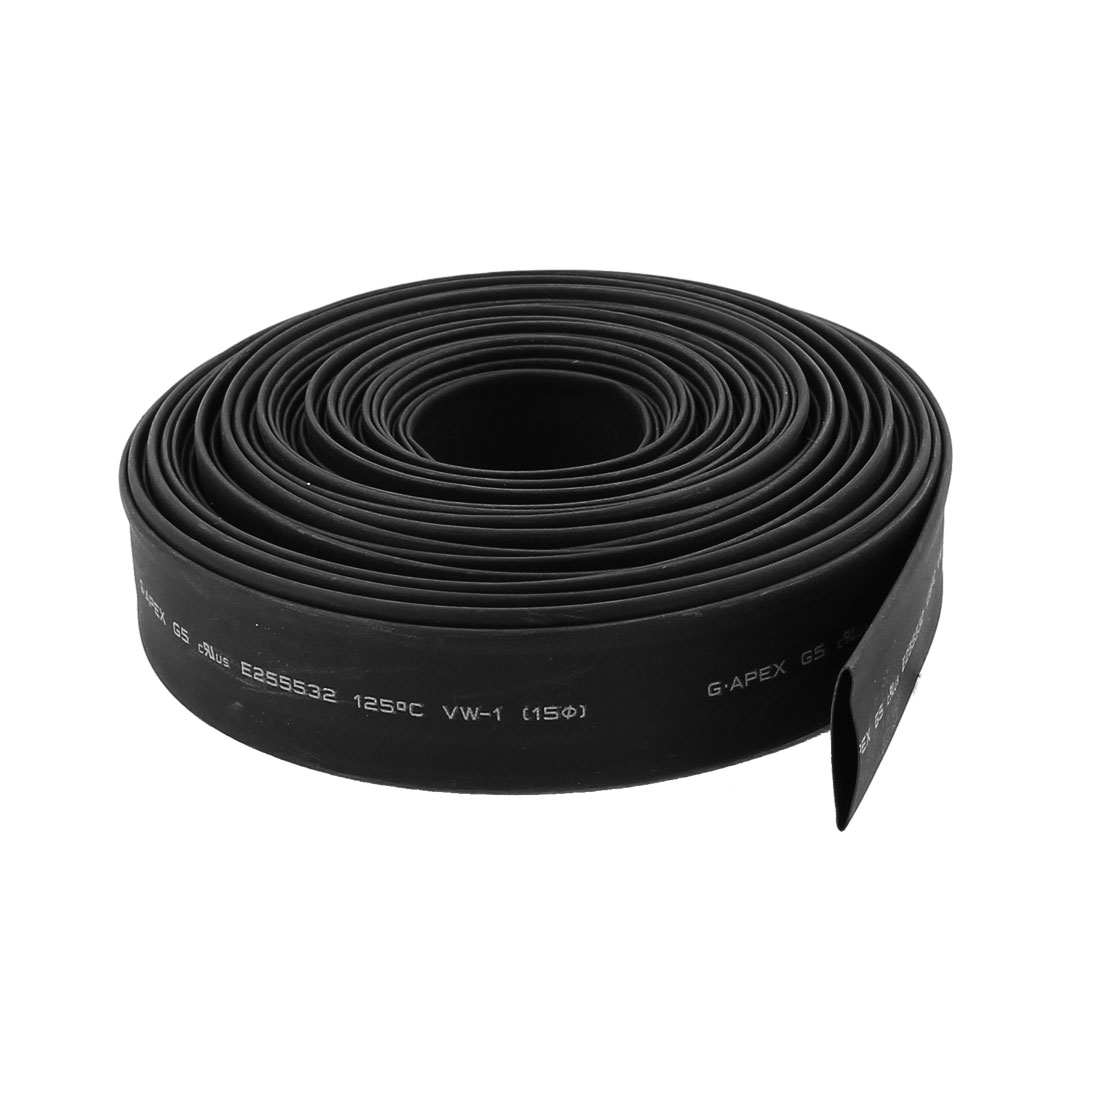 "10m x 0.59"" Diameter 2:1 Shrinkage Ratio PE Insulated Heat Shrink Tubing Black23"